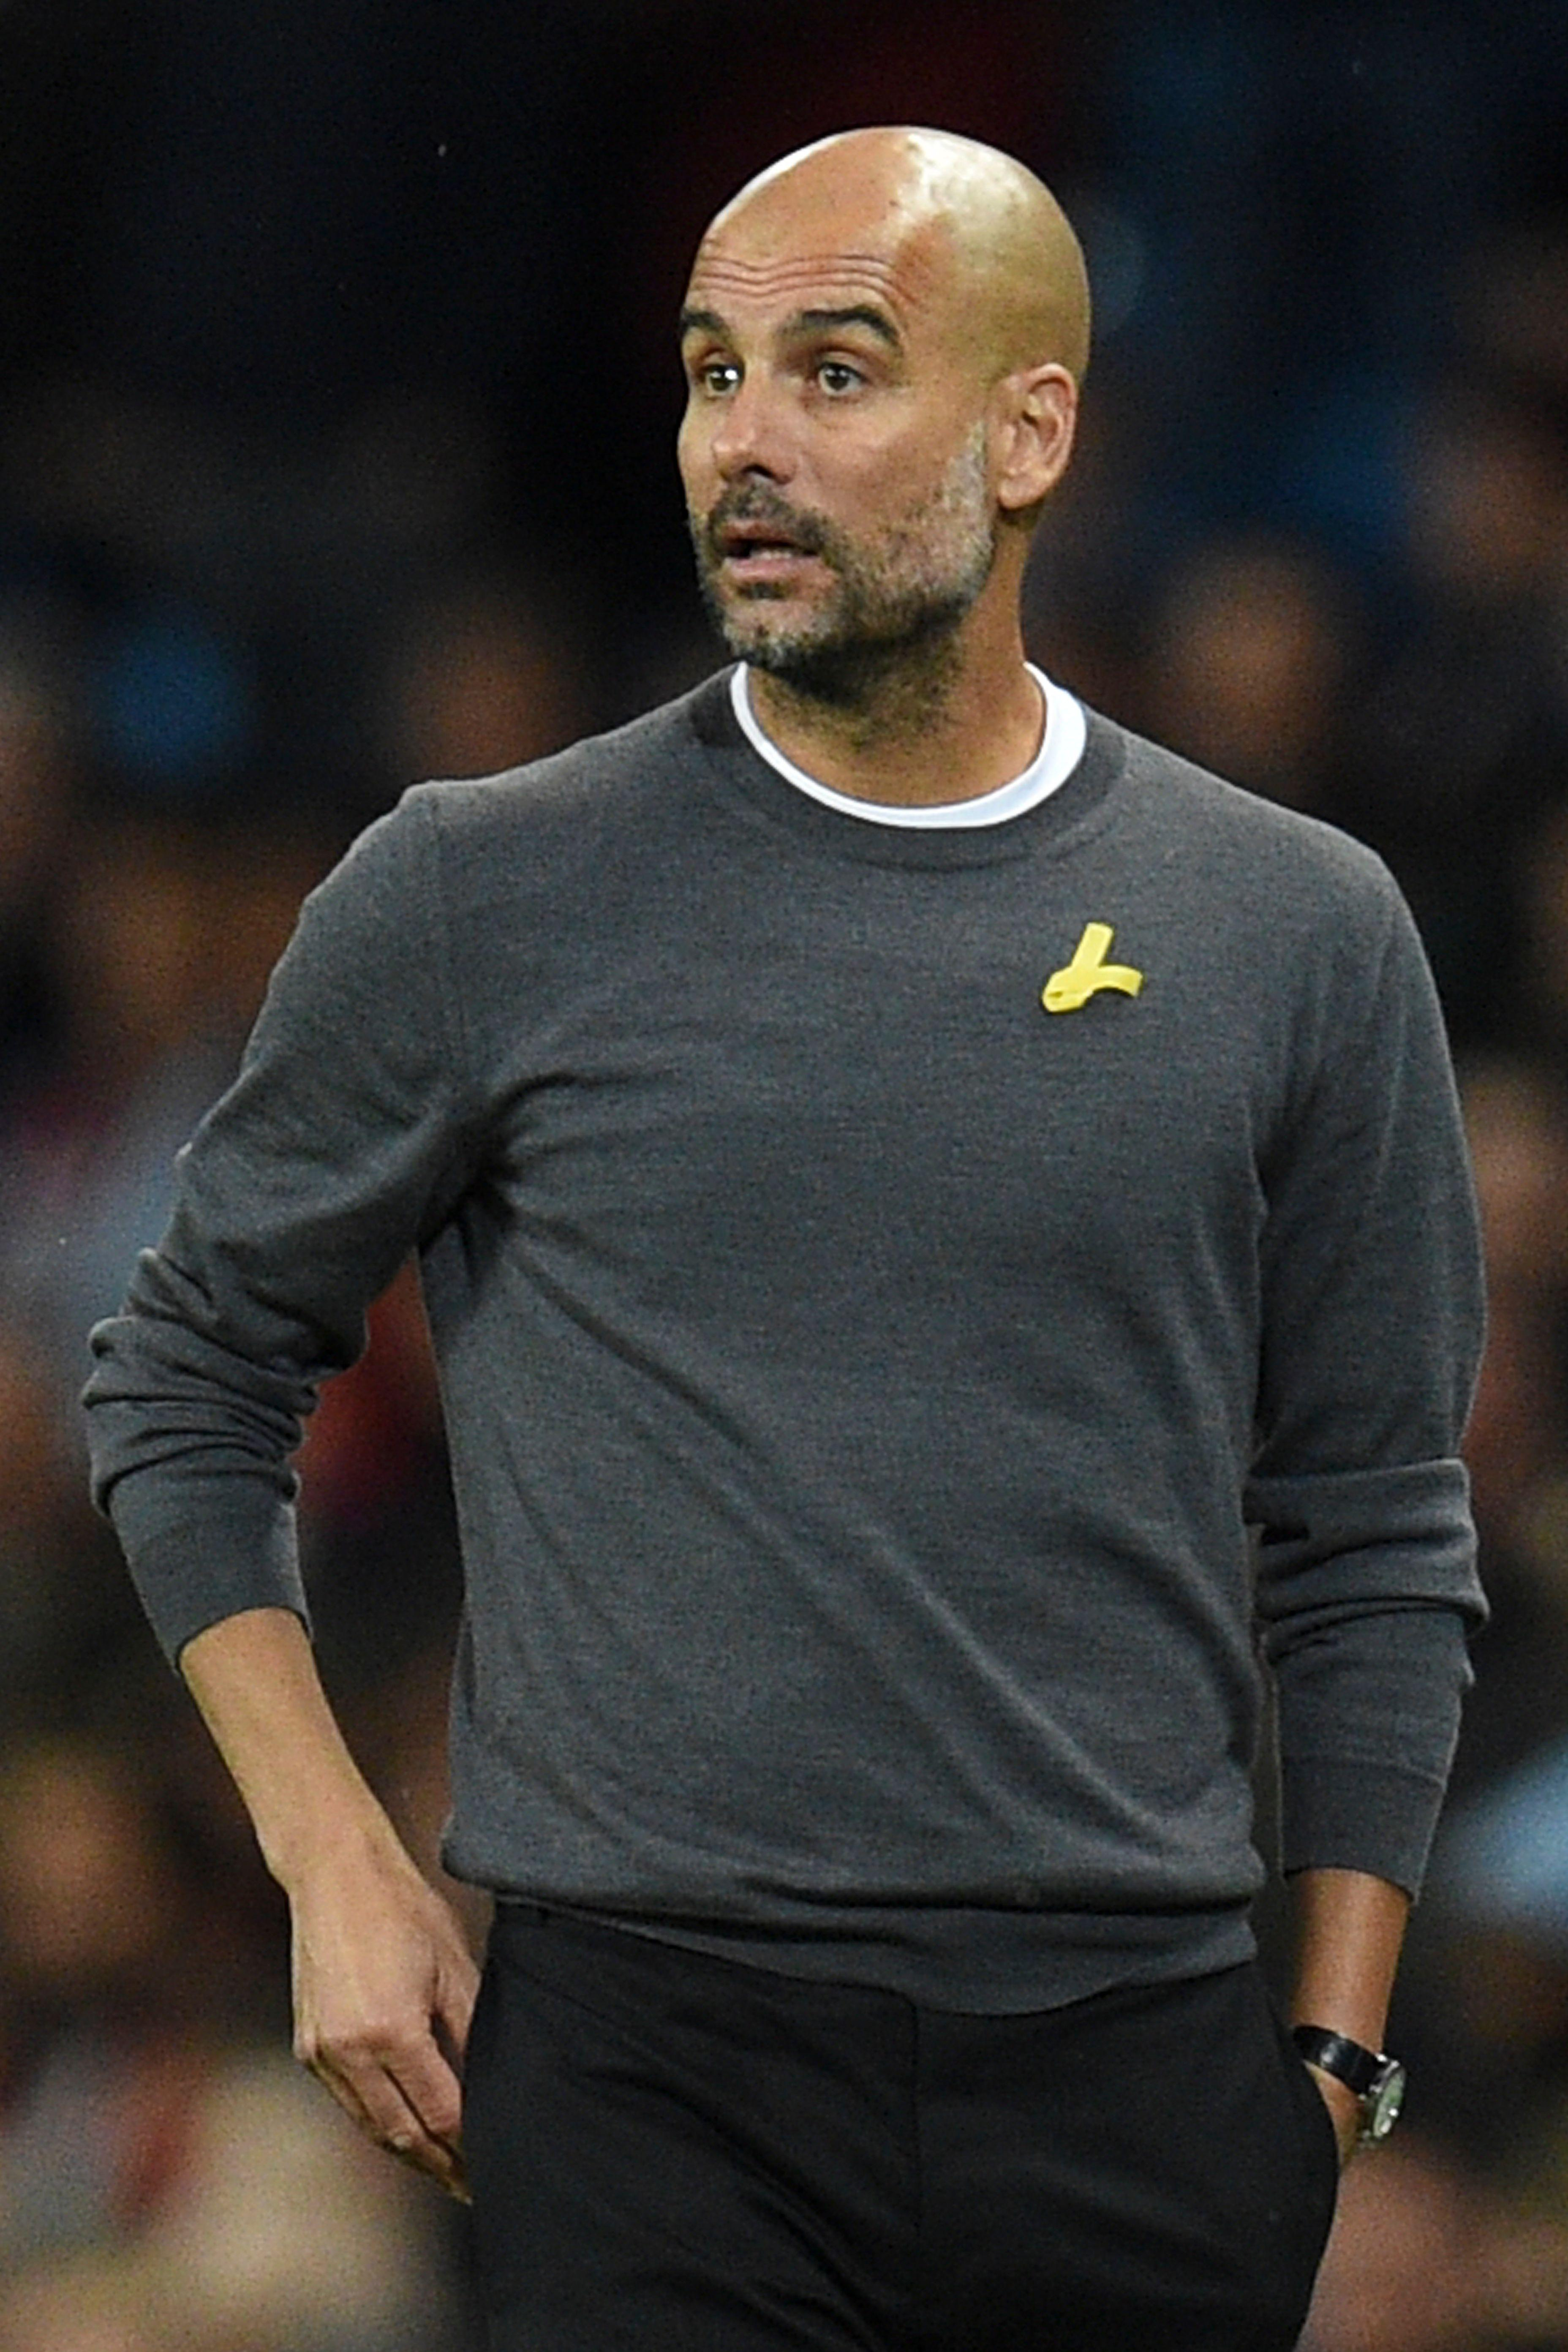 Pep Guardiola will now wear the yellow ribbon up until kick off, then hide it or take it off to avoid being fined